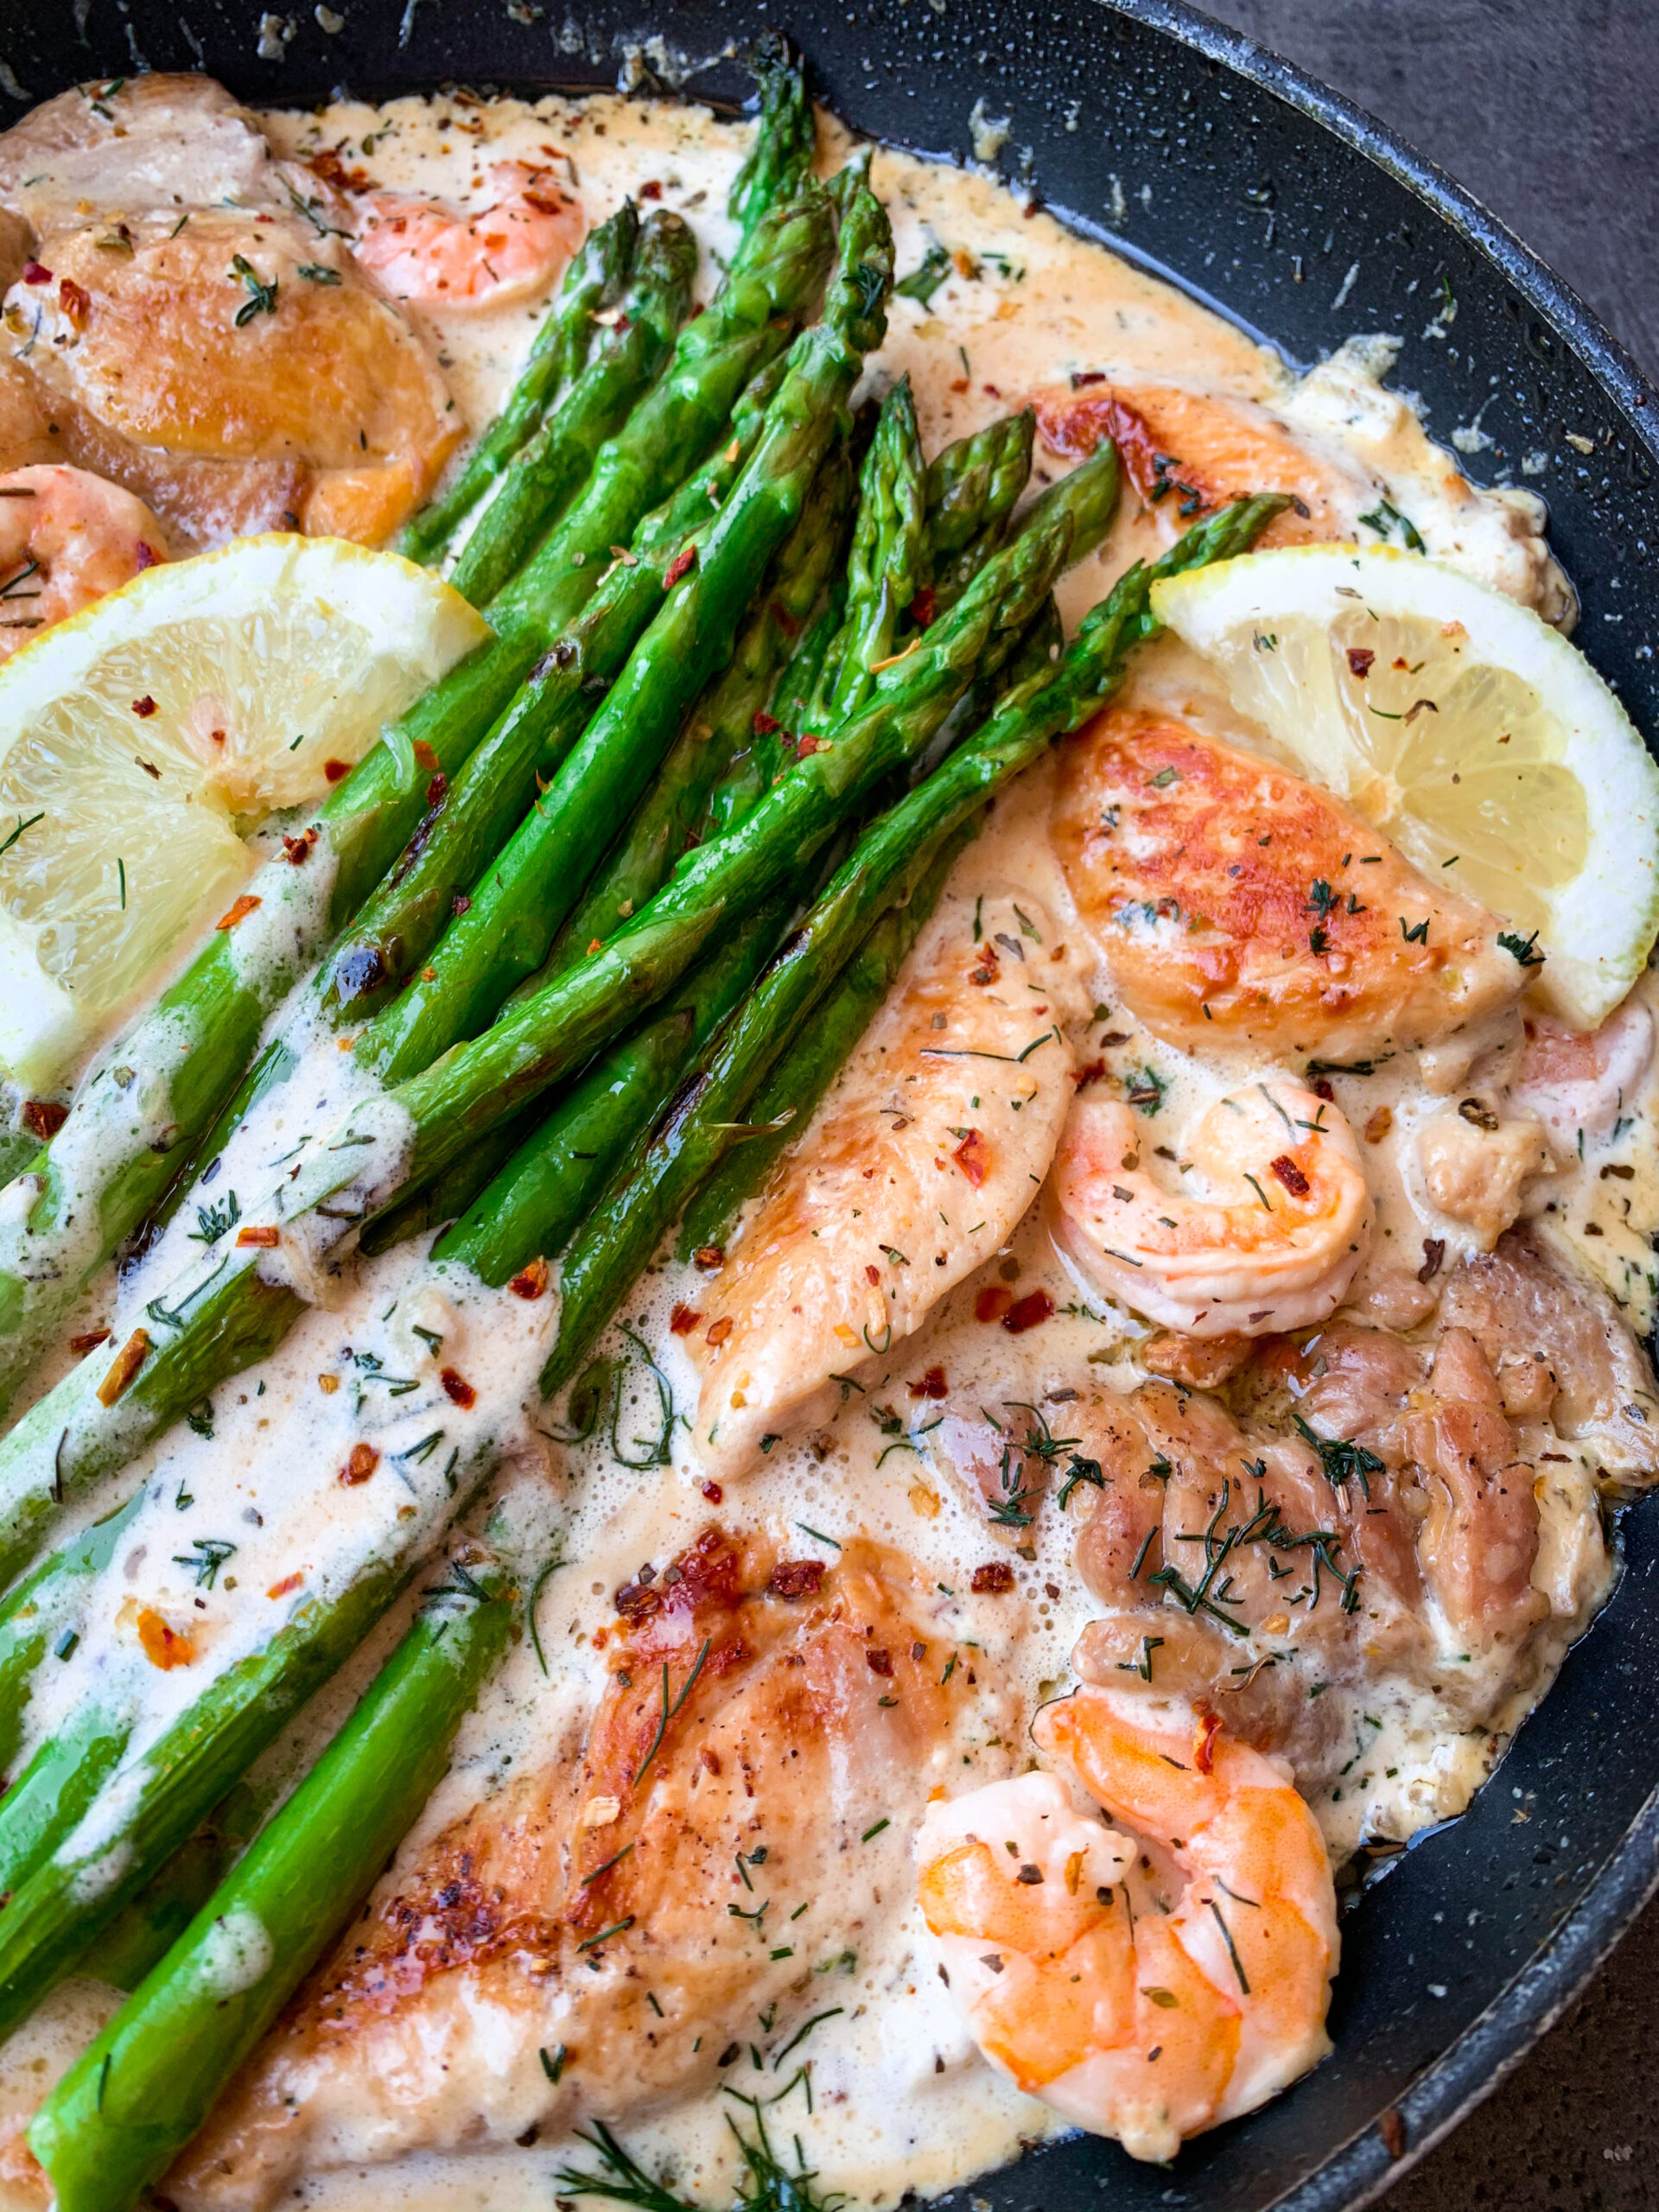 Picture of chicken with lemon cream sauce, shrimps, asparagus and dill